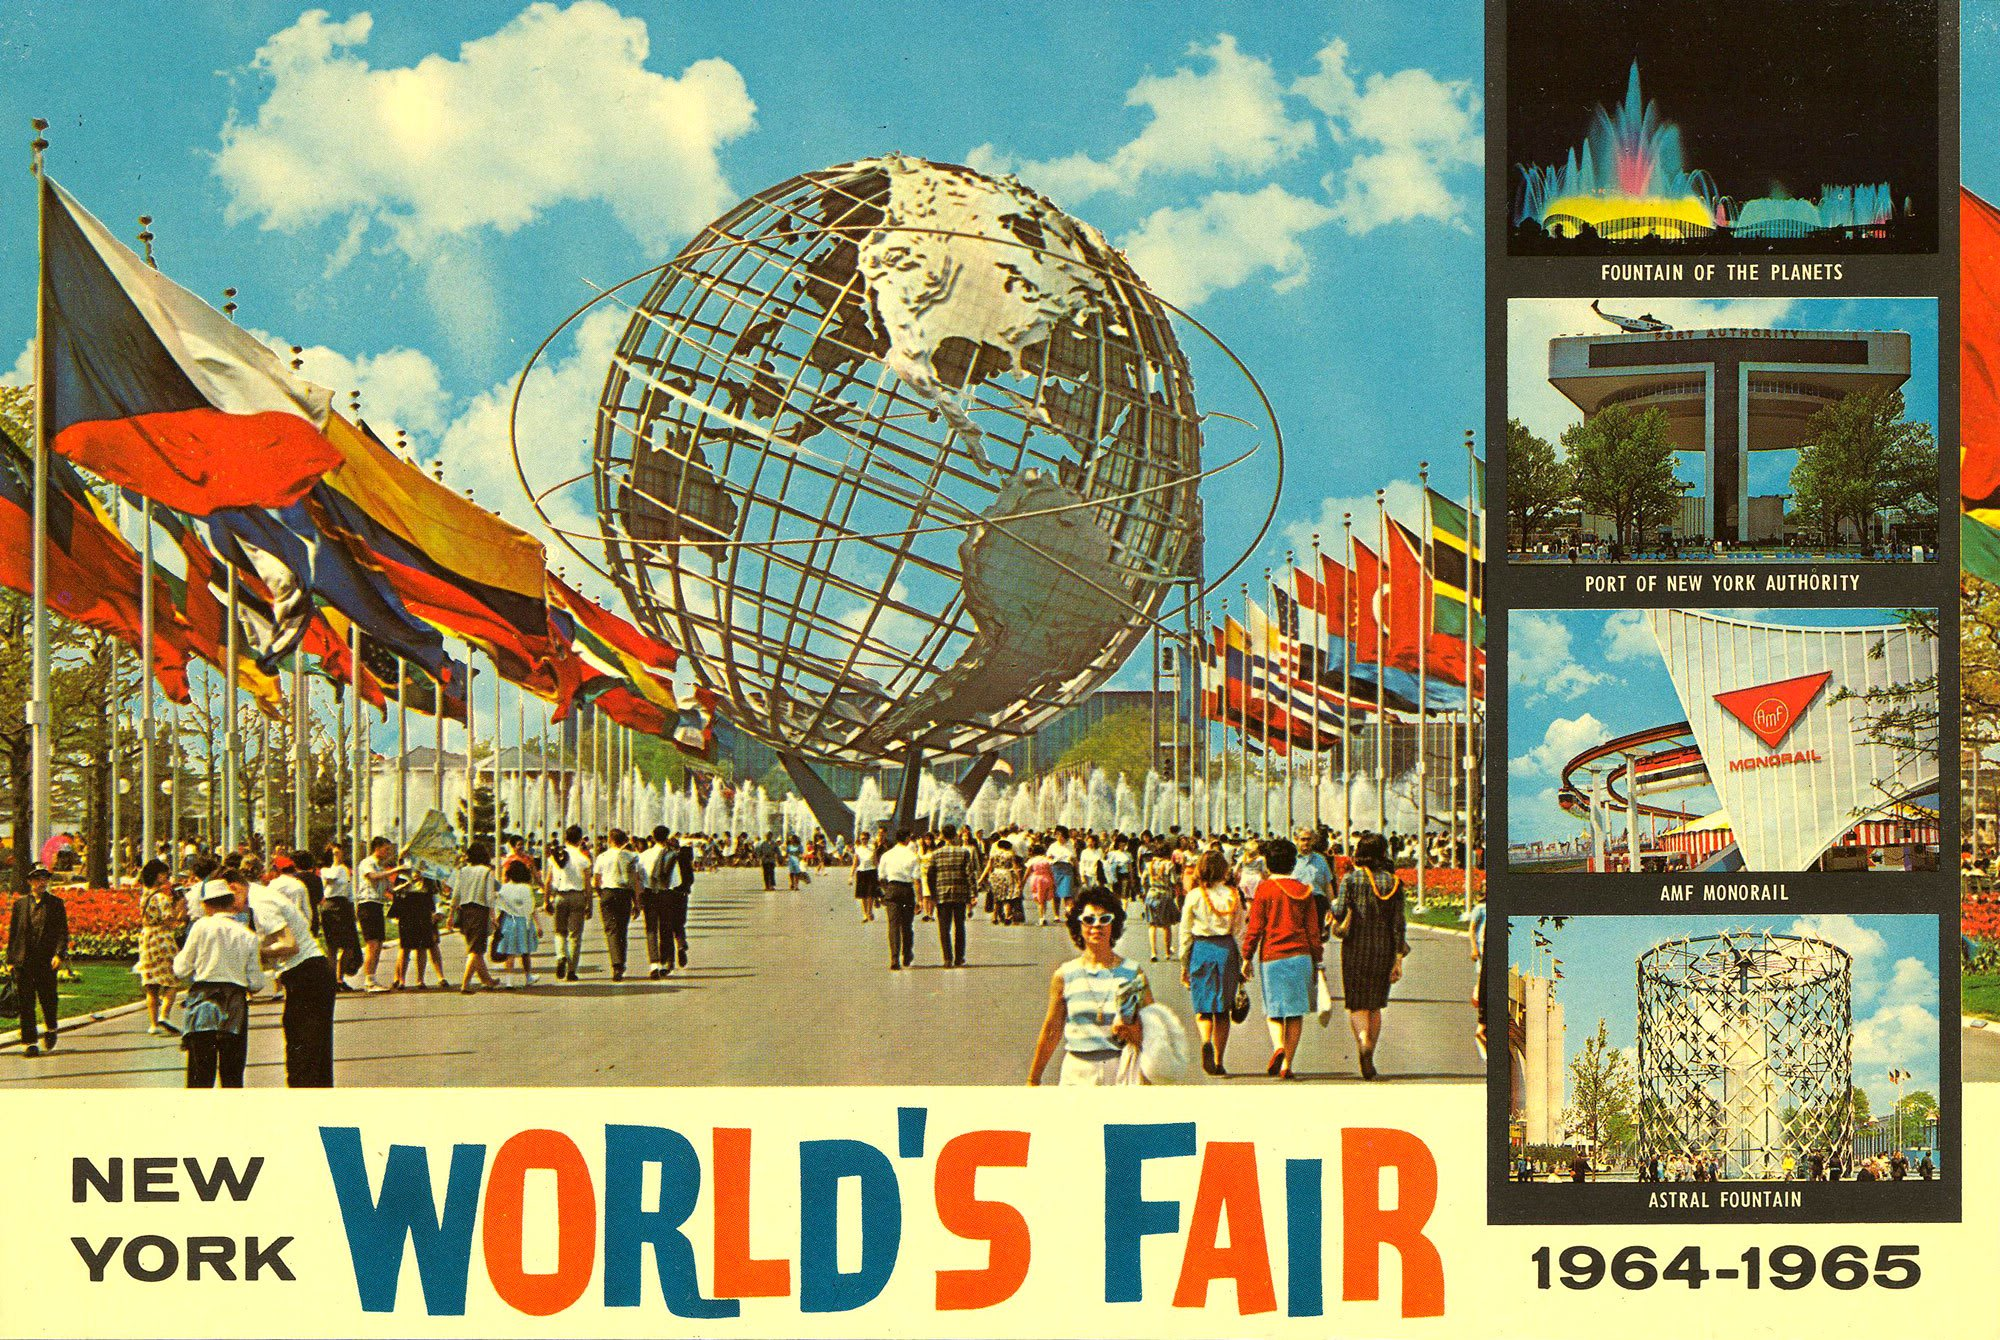 worlds fair importance World's fair historical society - preserving the history of international expositions and promoting future world's fairs.